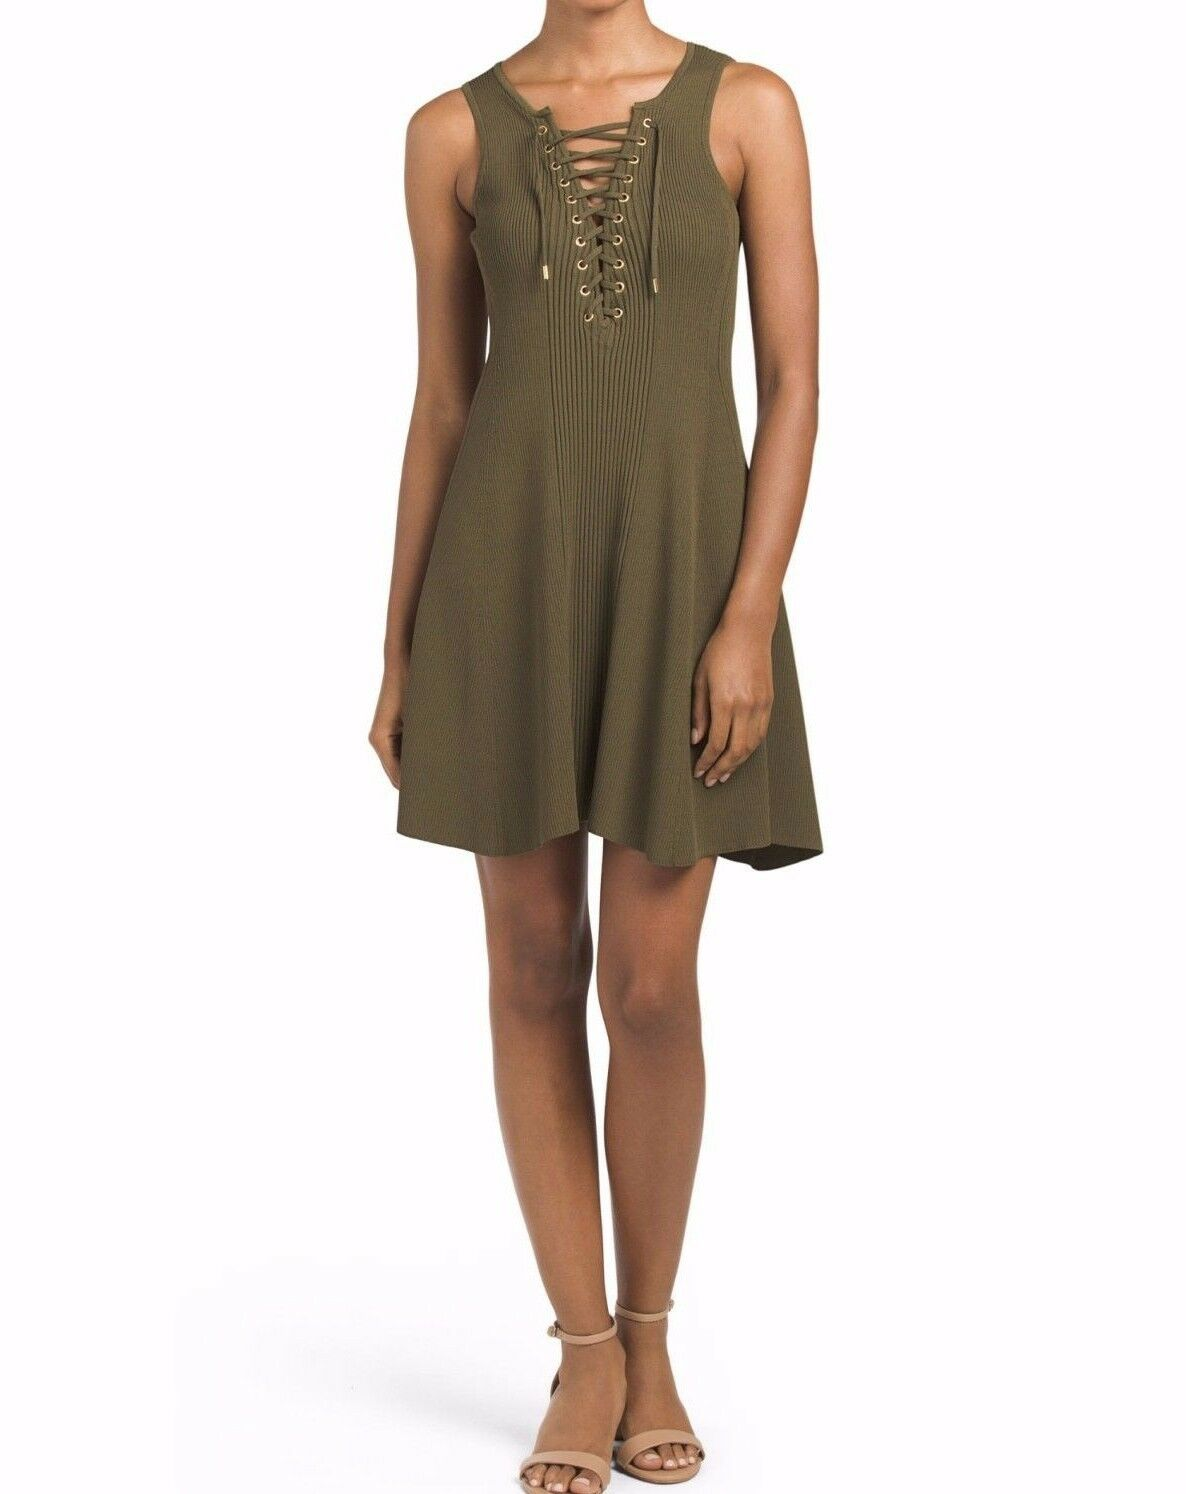 NWT TORN BY RONNY KOBO SzL LACE UP TEXTUrot FIT AND FLARE SLEEVELESS DRESS OLIVE